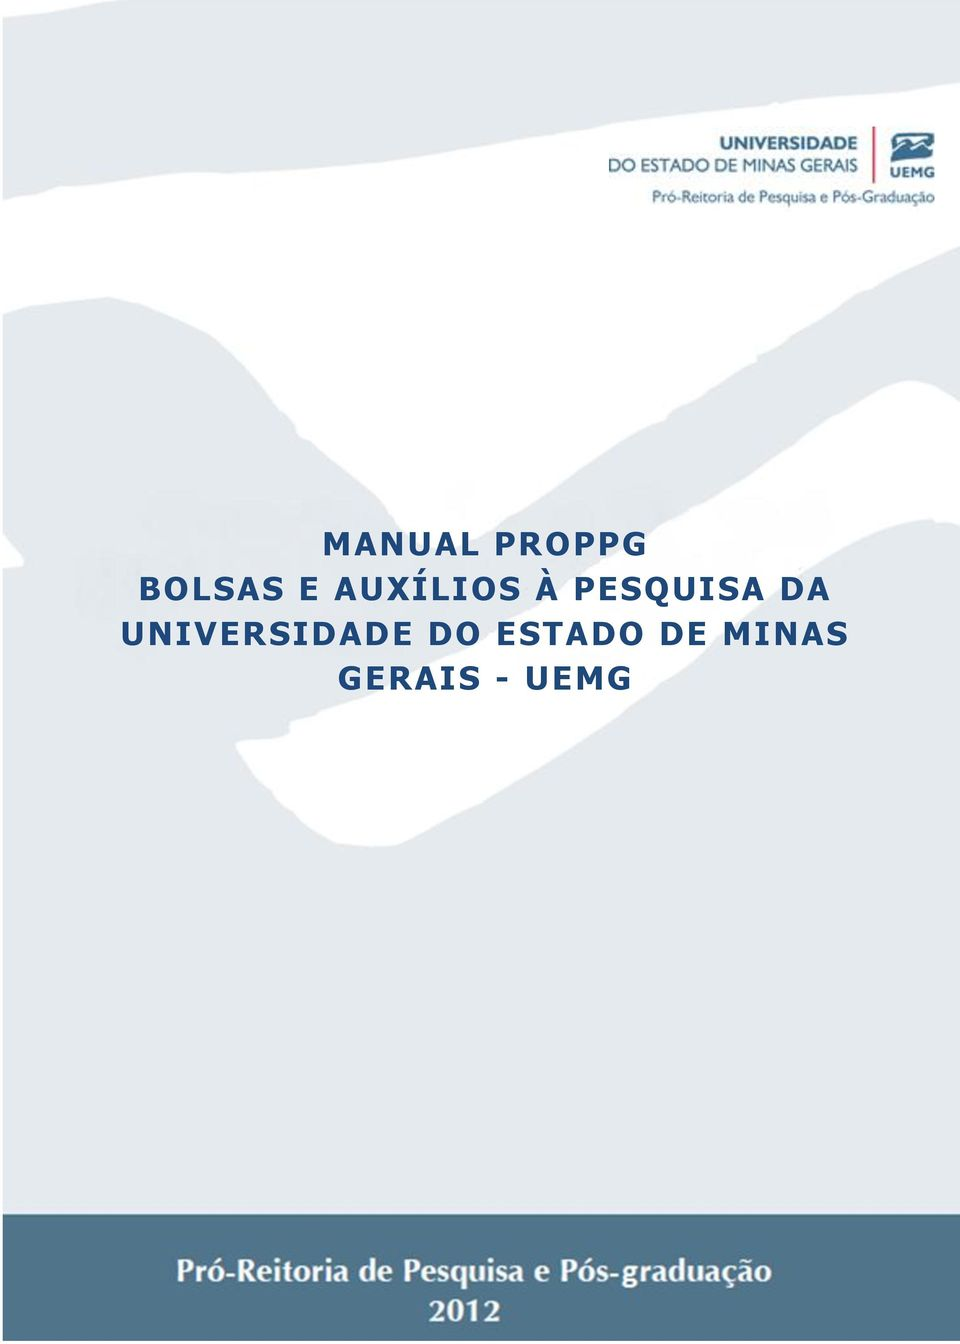 UNIVERSIDADE DO ESTADO